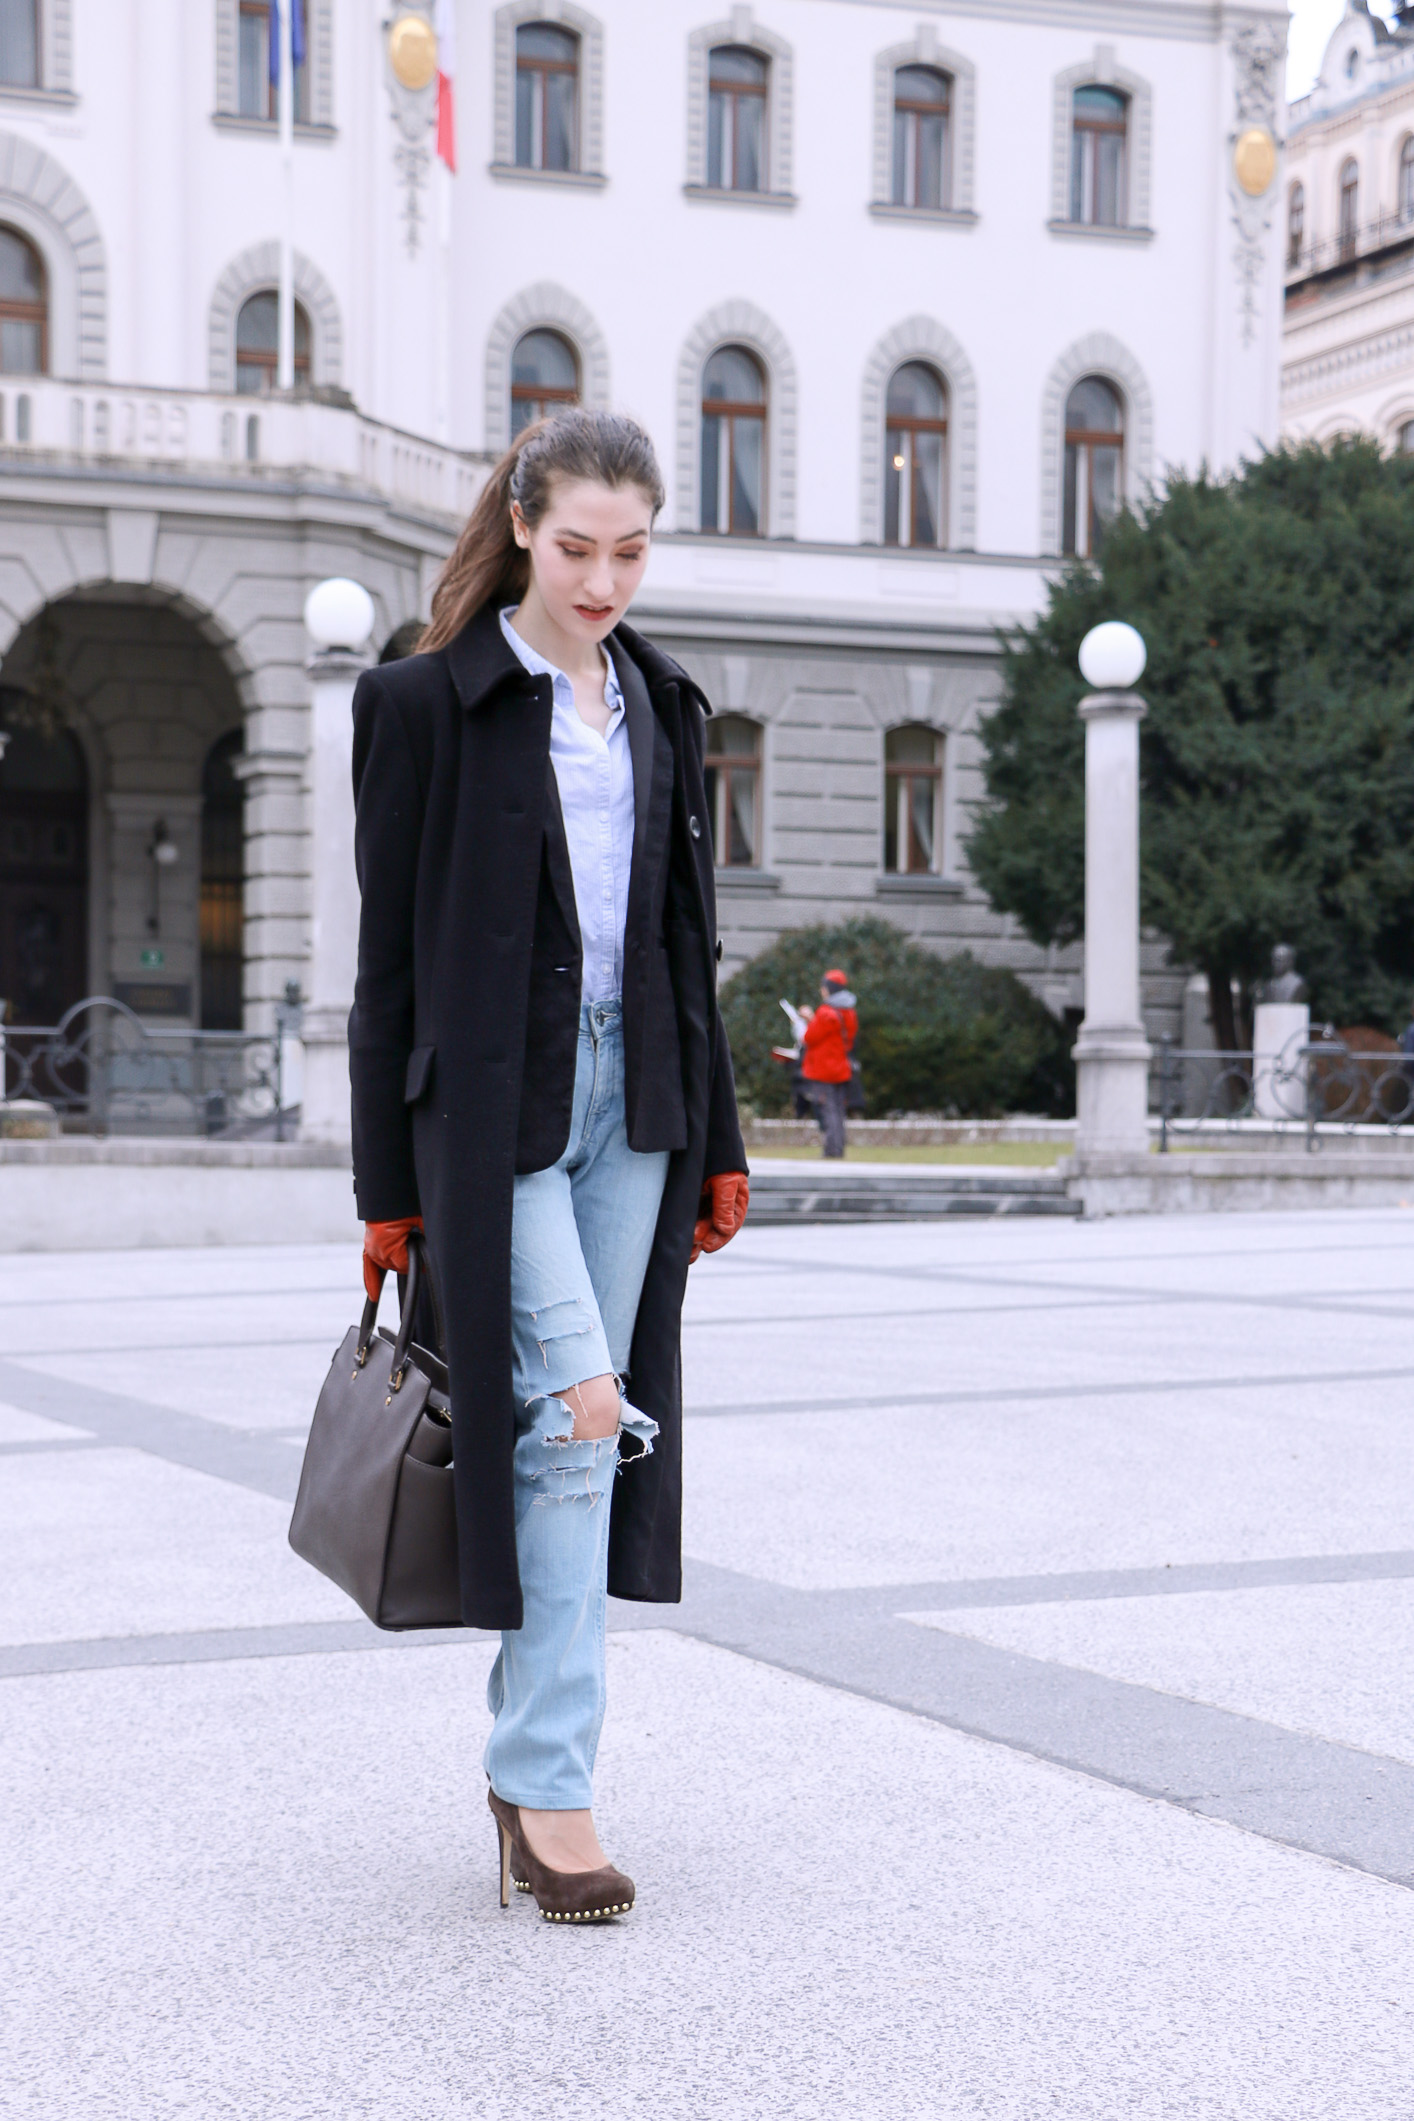 Fashion blogger Veronika Lipar of Brunette From Wall Street sharing how to DIY the blue ripped jeans for a chic Casual Look